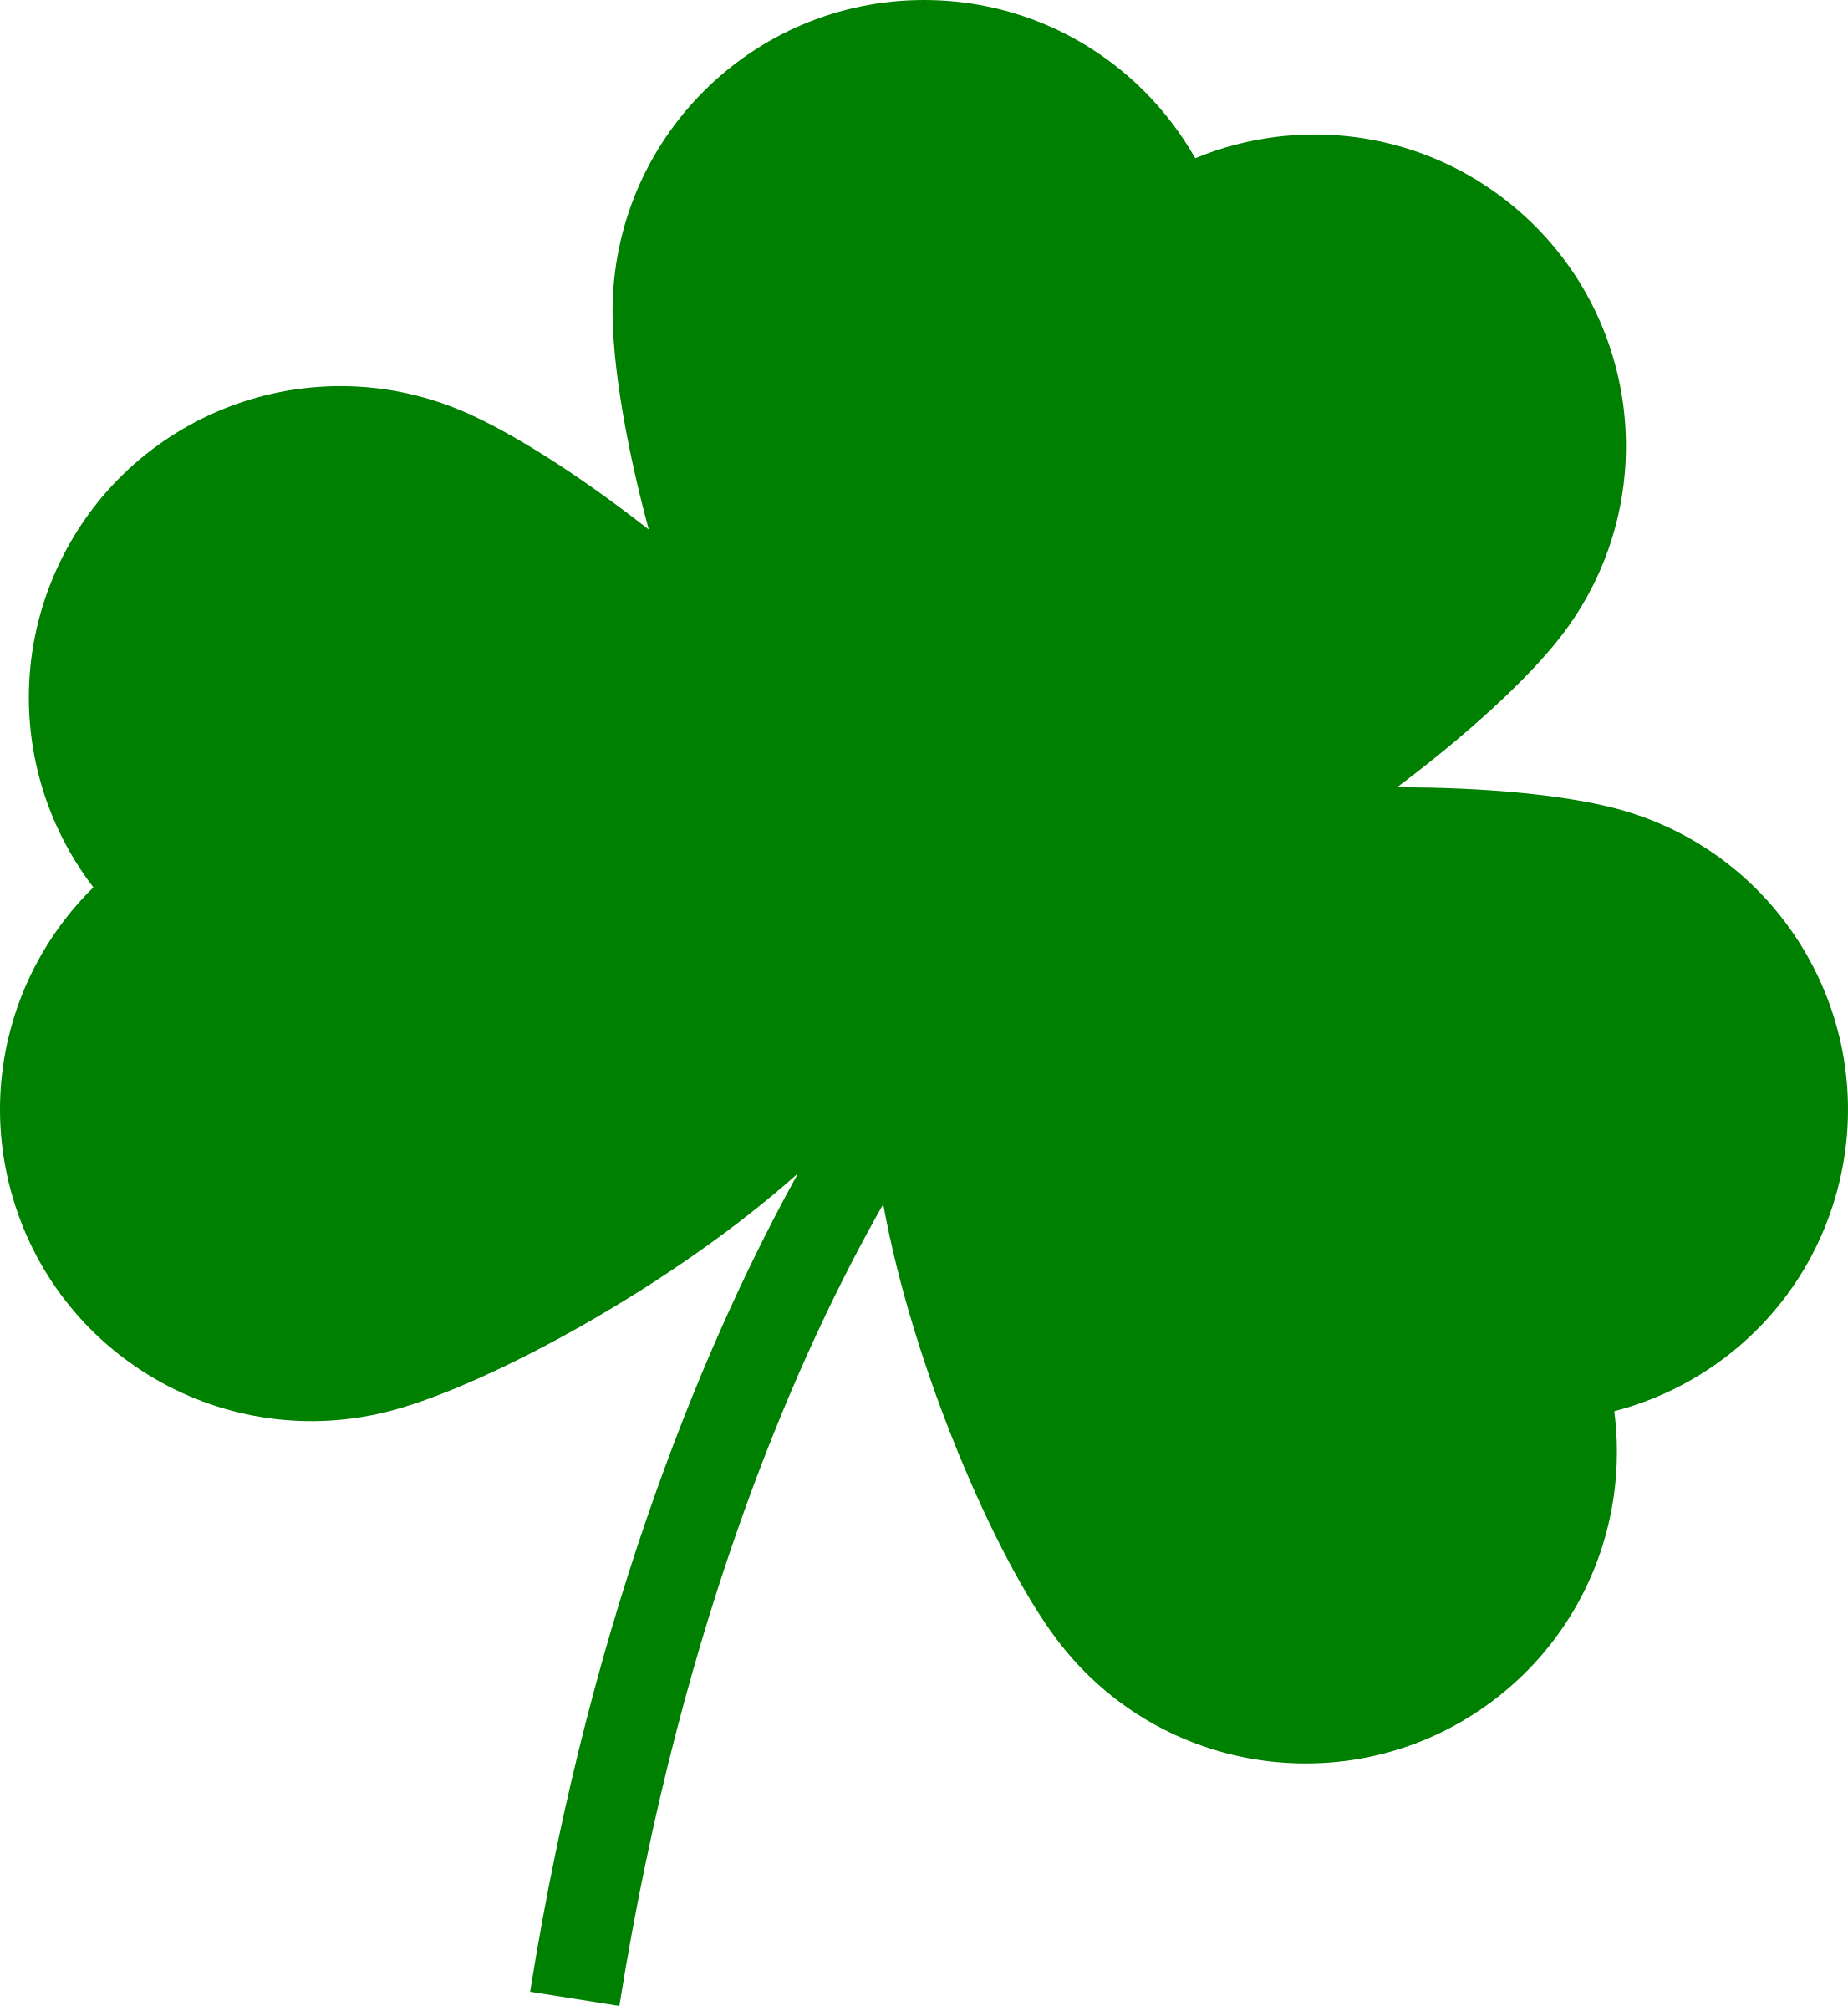 Png images free download. Transparent clover graphic black and white stock